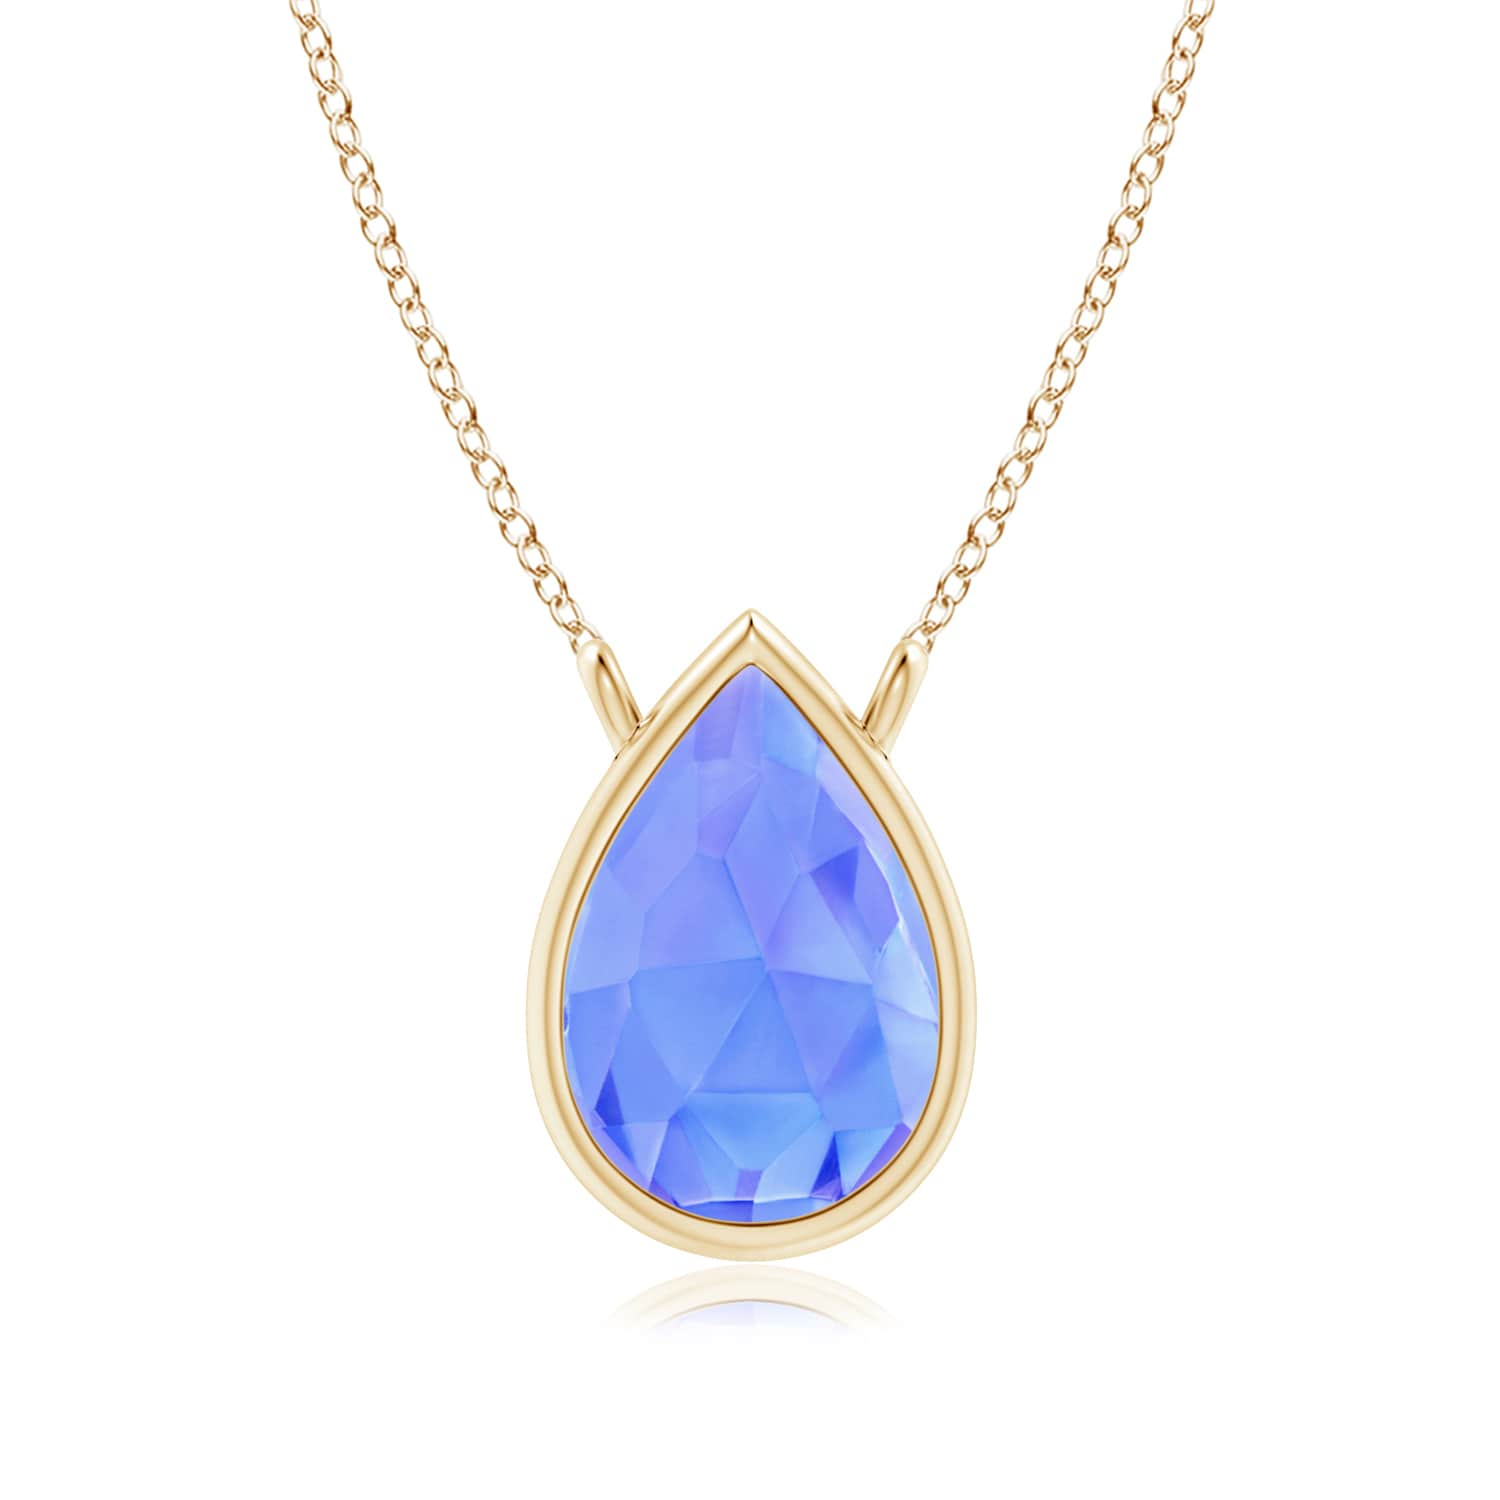 Angara Pear Shaped Tanzanite Necklace in Yellow Gold kdlAXUvEJ